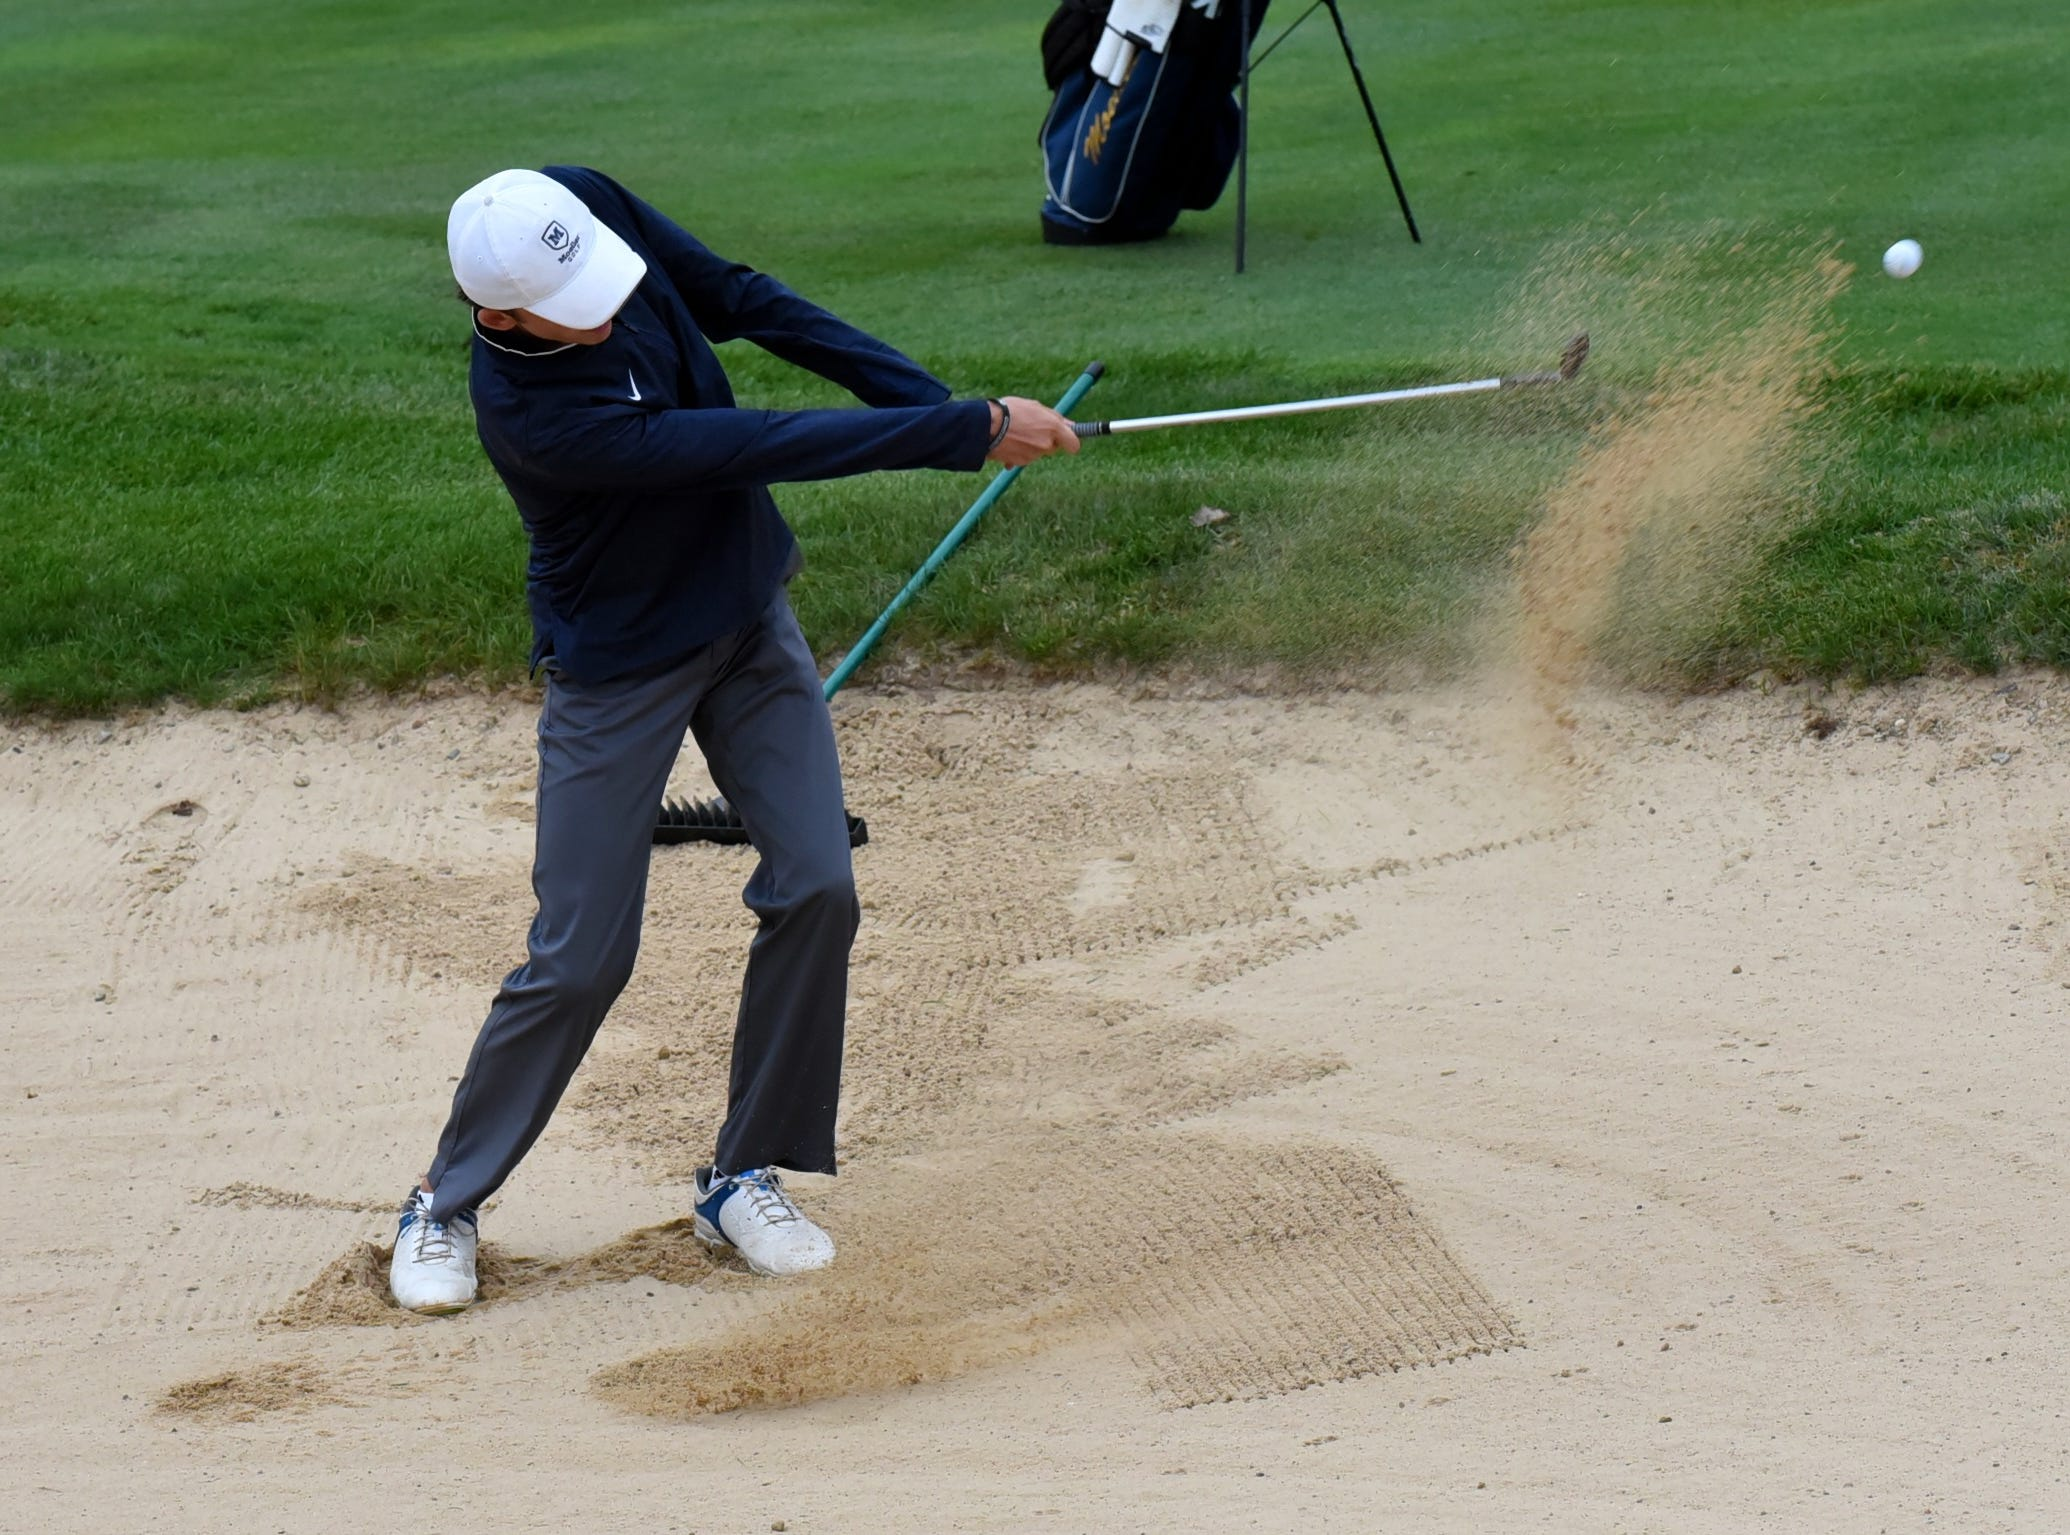 Ryan Kelly of Moeller clears the sandtrap on the first hole at the 2018 Southwest District Golf Tournament in Beavercreek, Ohio, October 11, 2018.